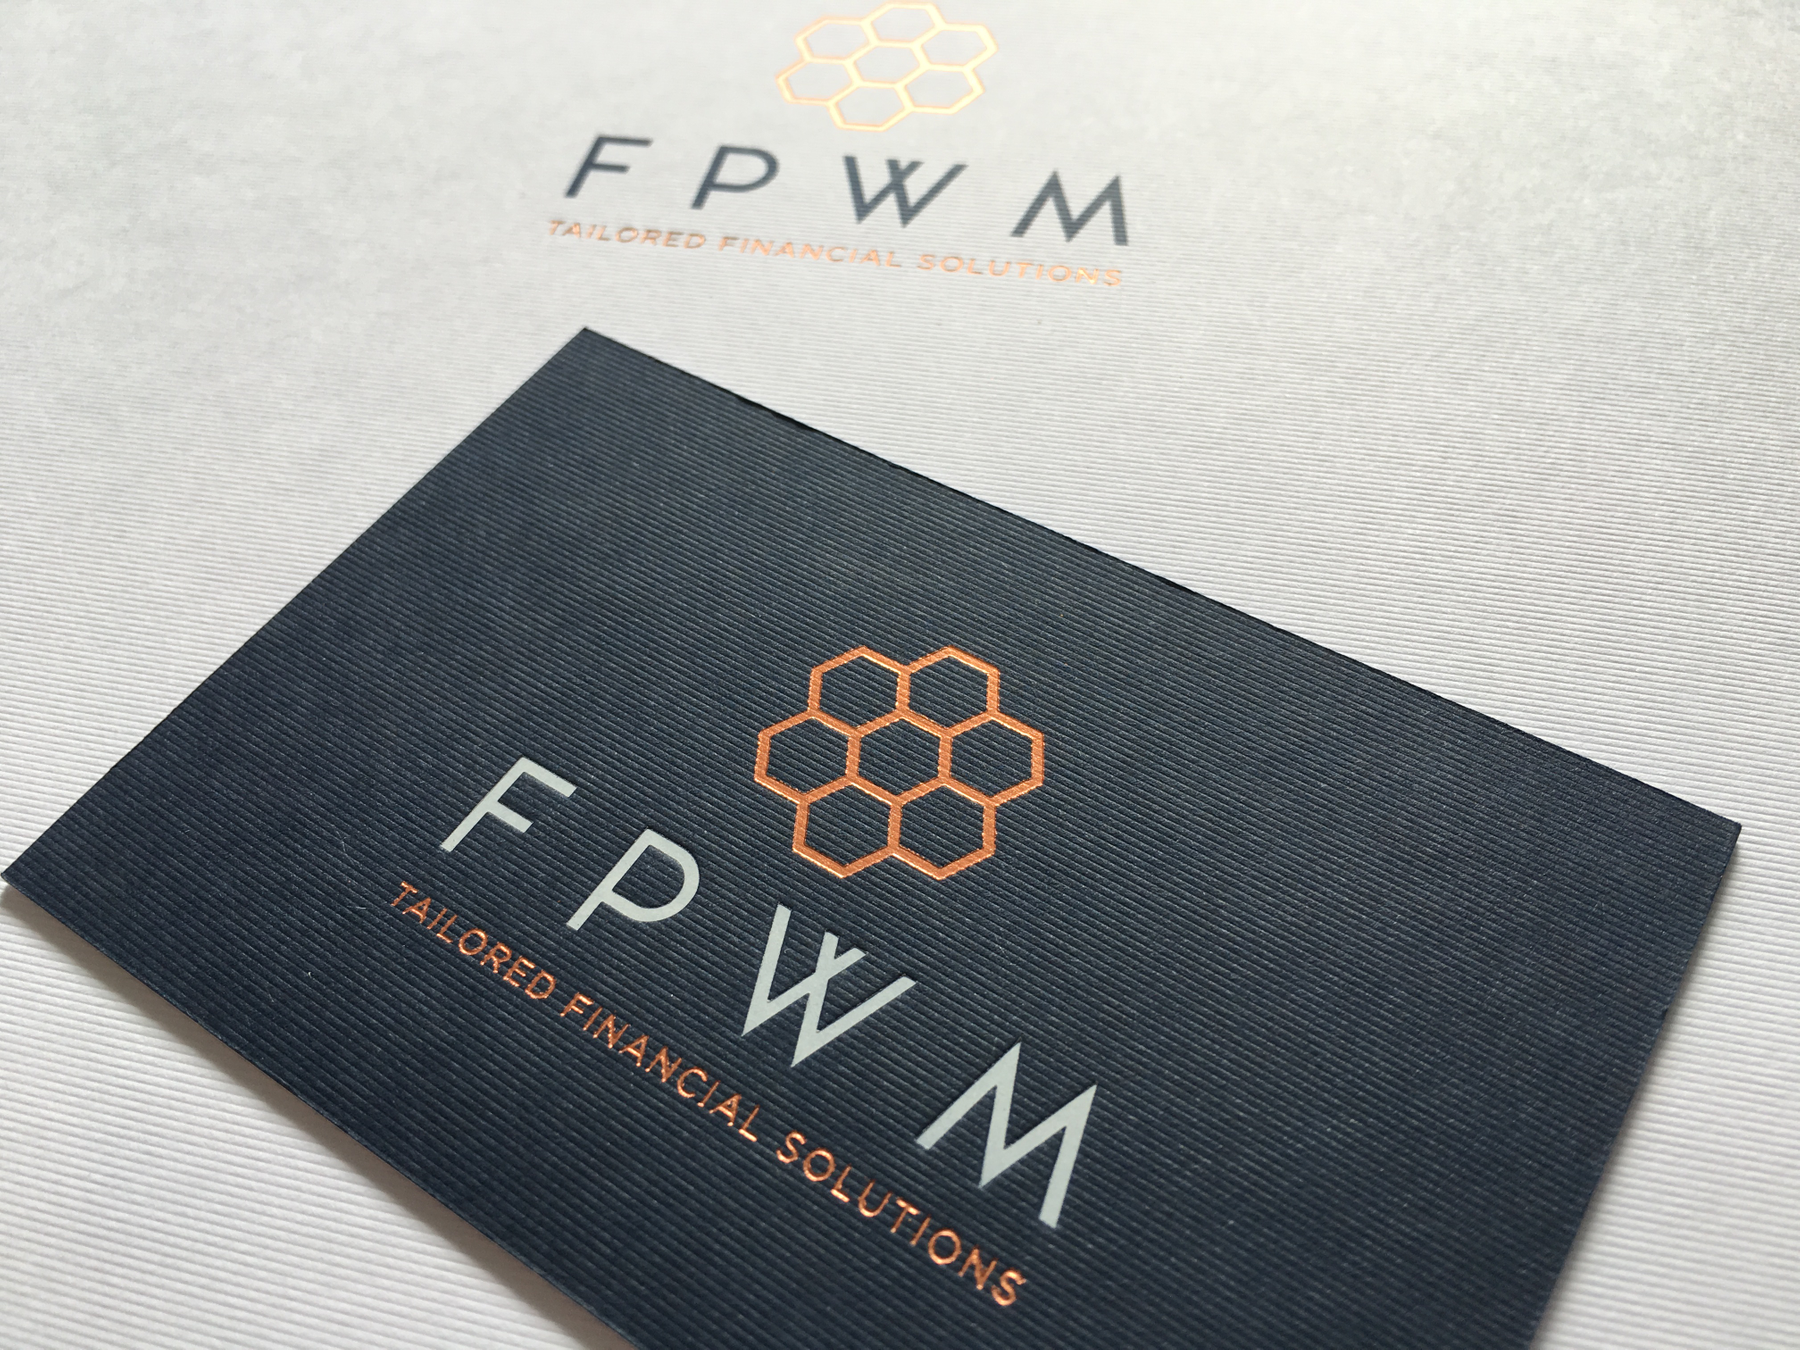 FPWM Brand Launch